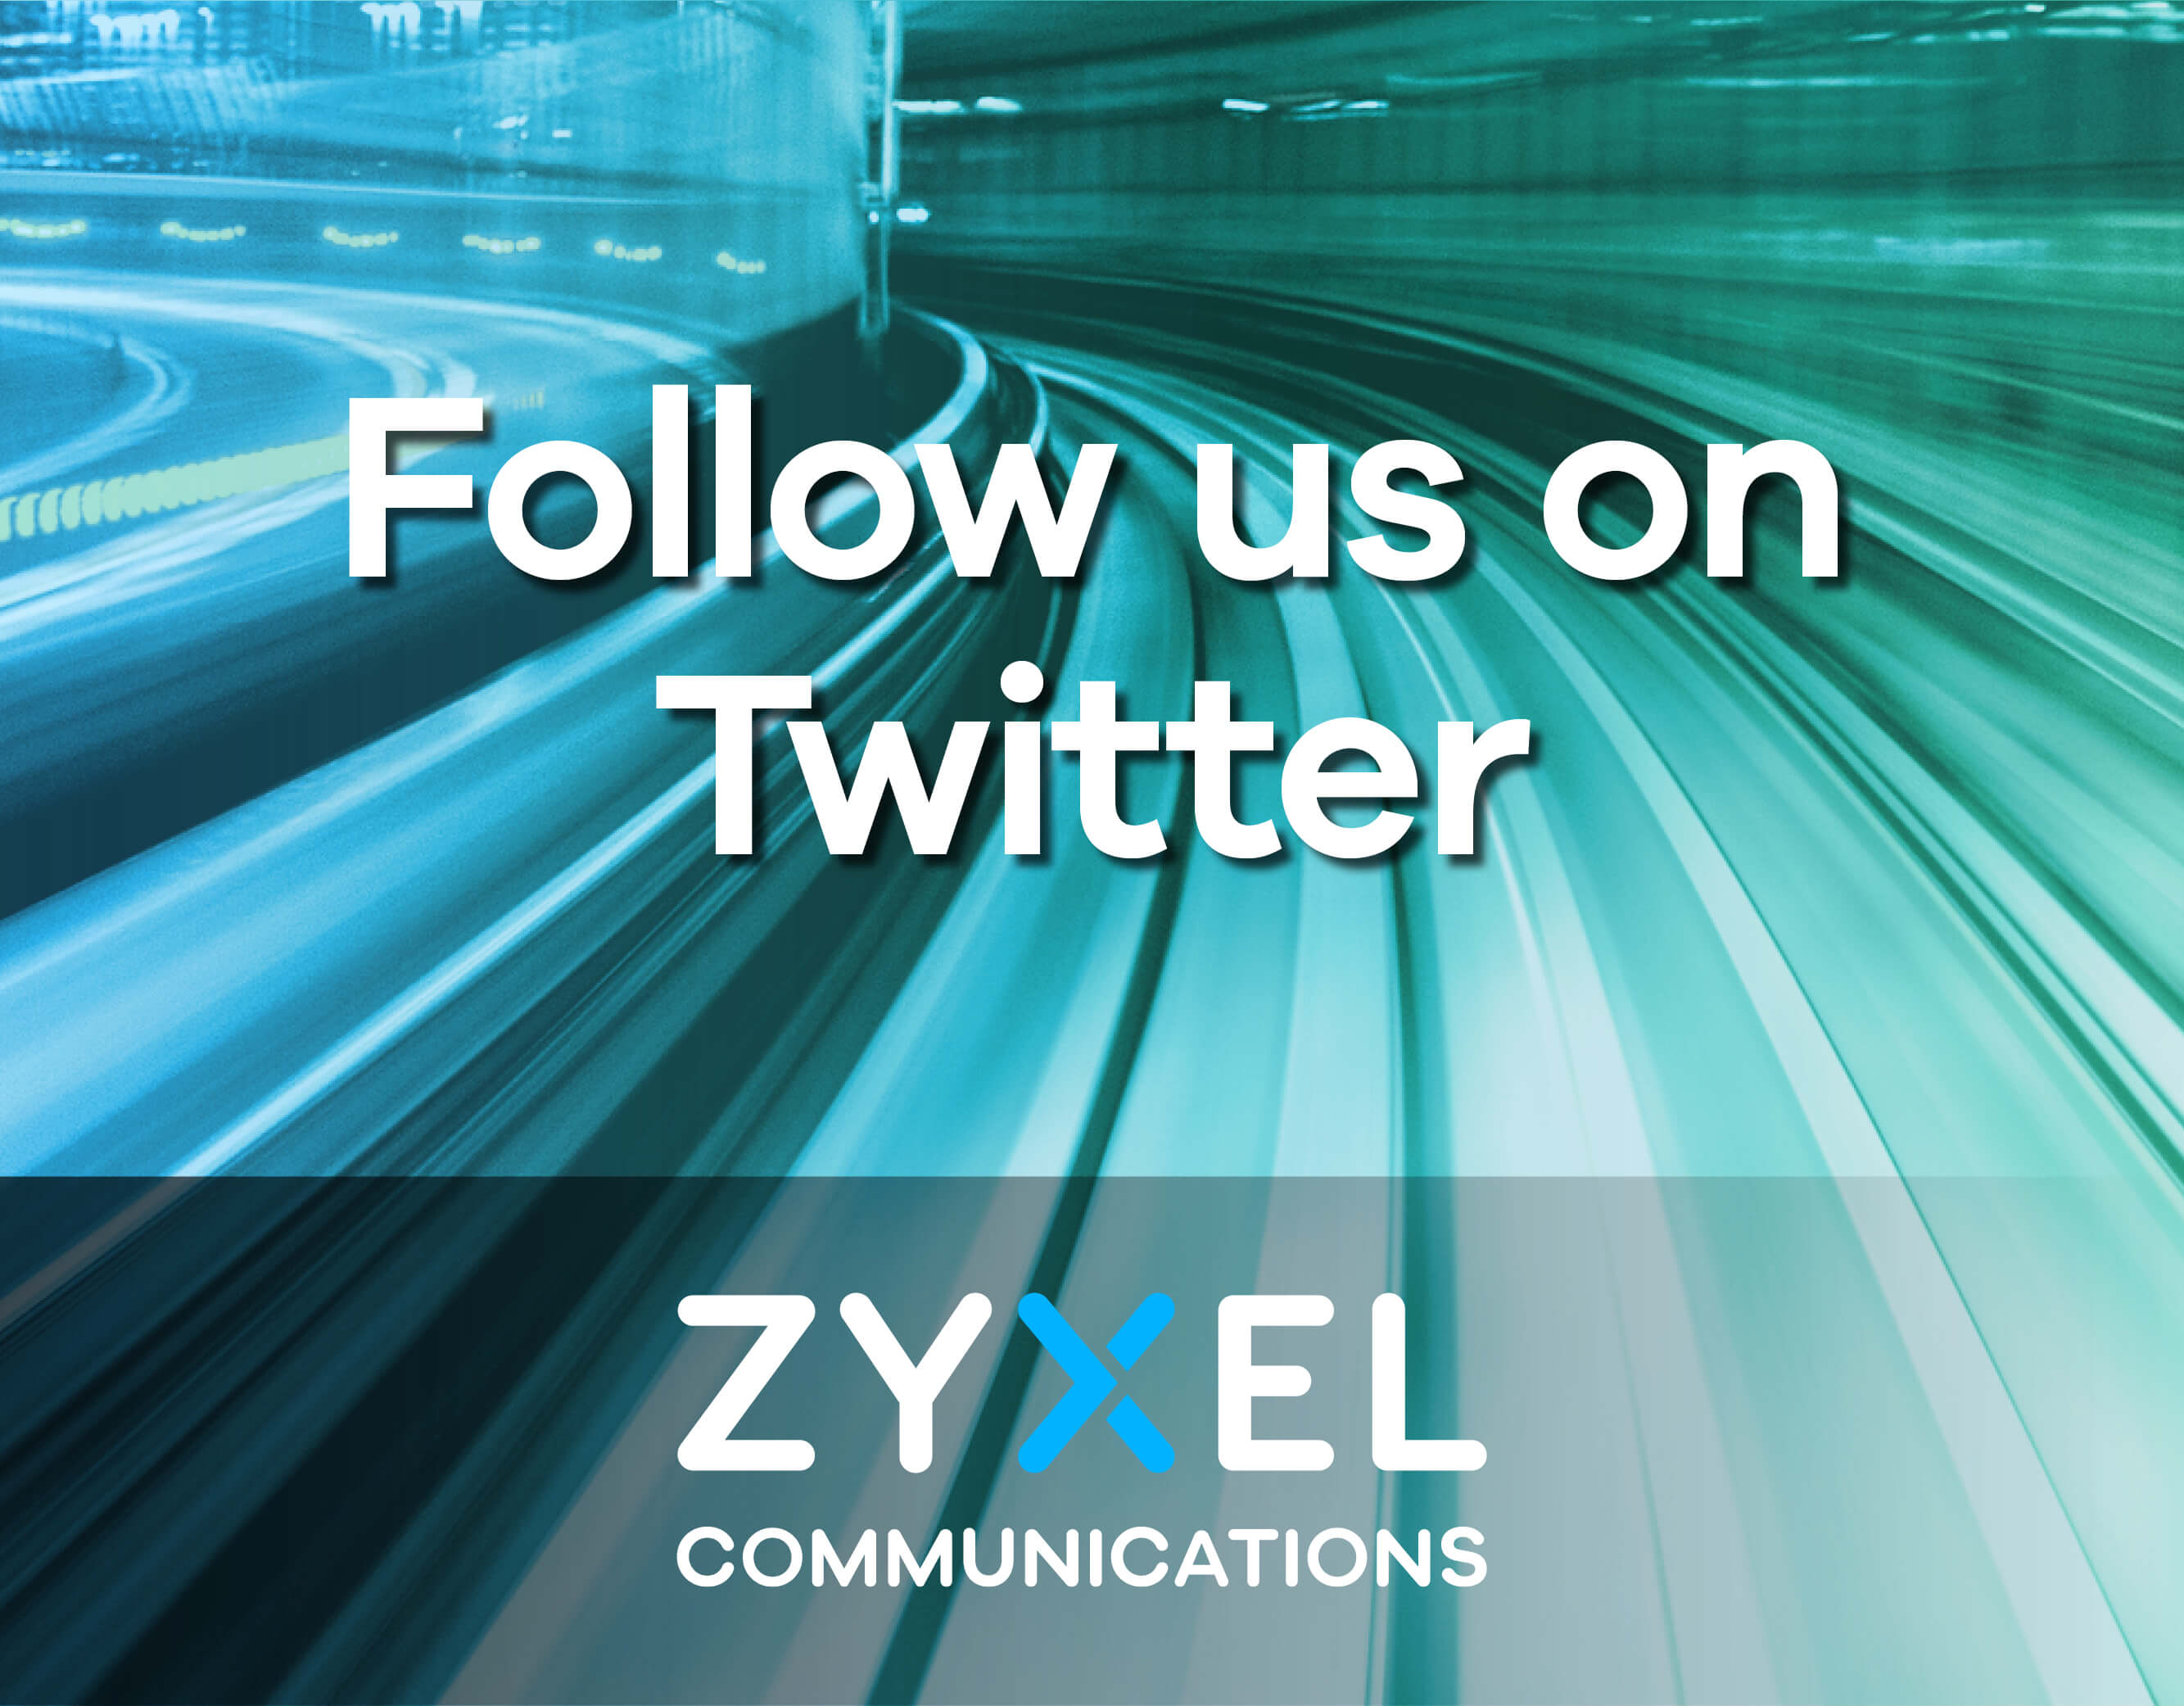 Zyxel Communications – Follow us on Twitter